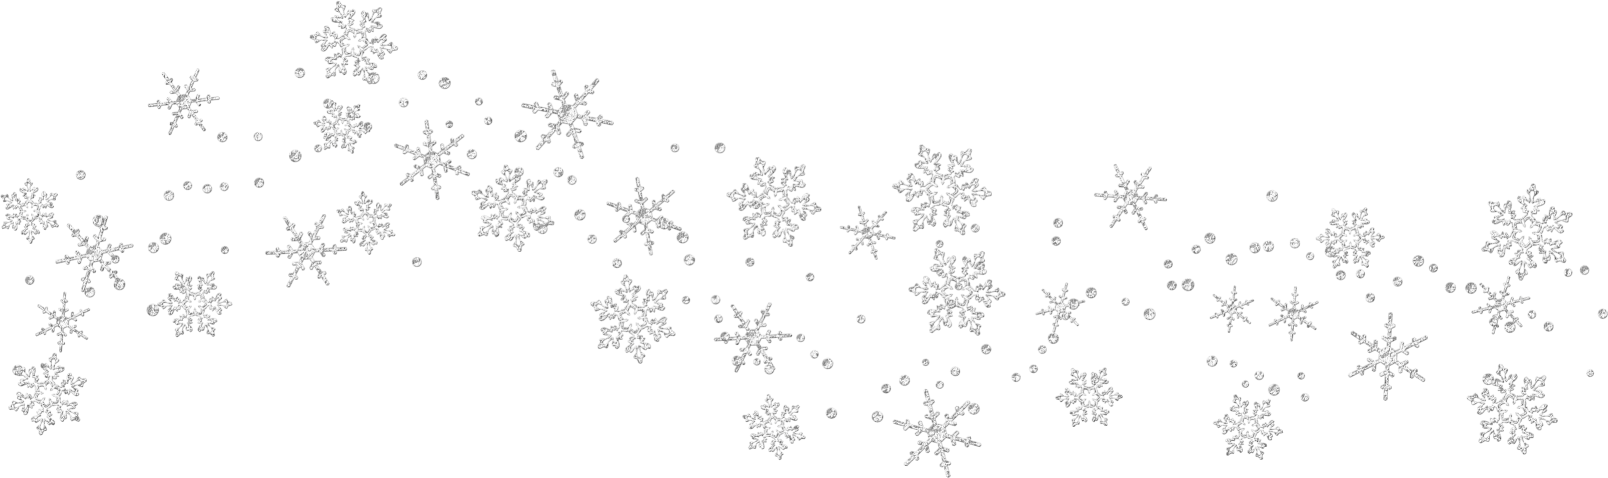 svg royalty free stock snowflake background clipart #57309860